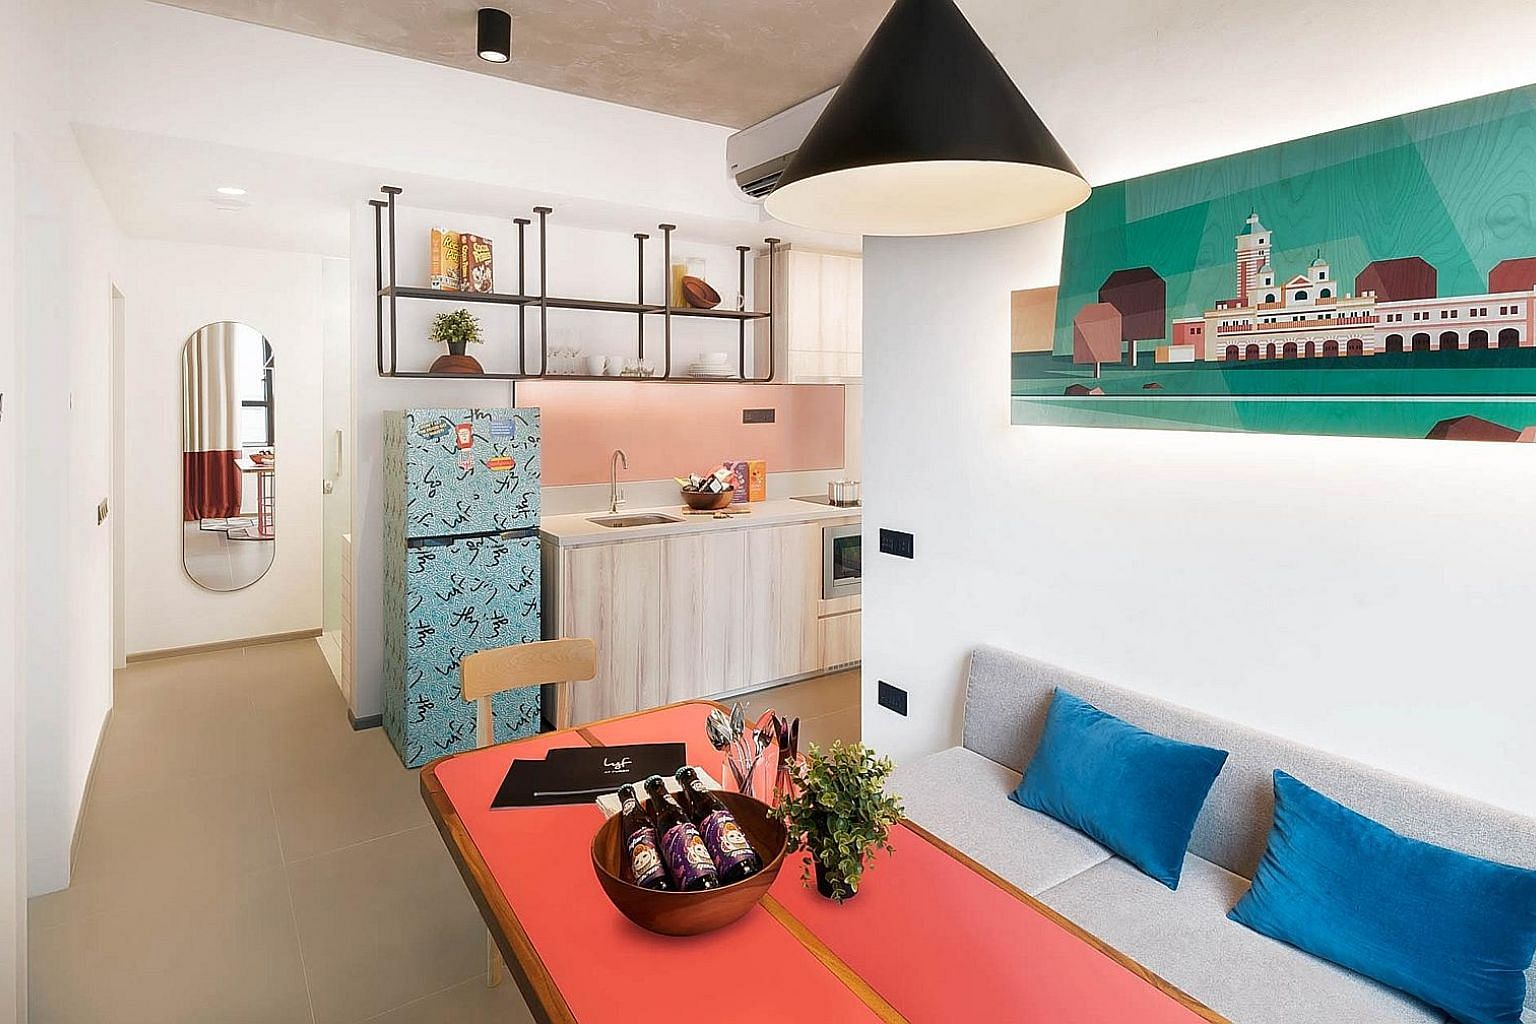 A four-bedroom unit with a shared kitchen and toilets at lyf Funan Singapore, a co-living property in Funan by The Ascott Limited.